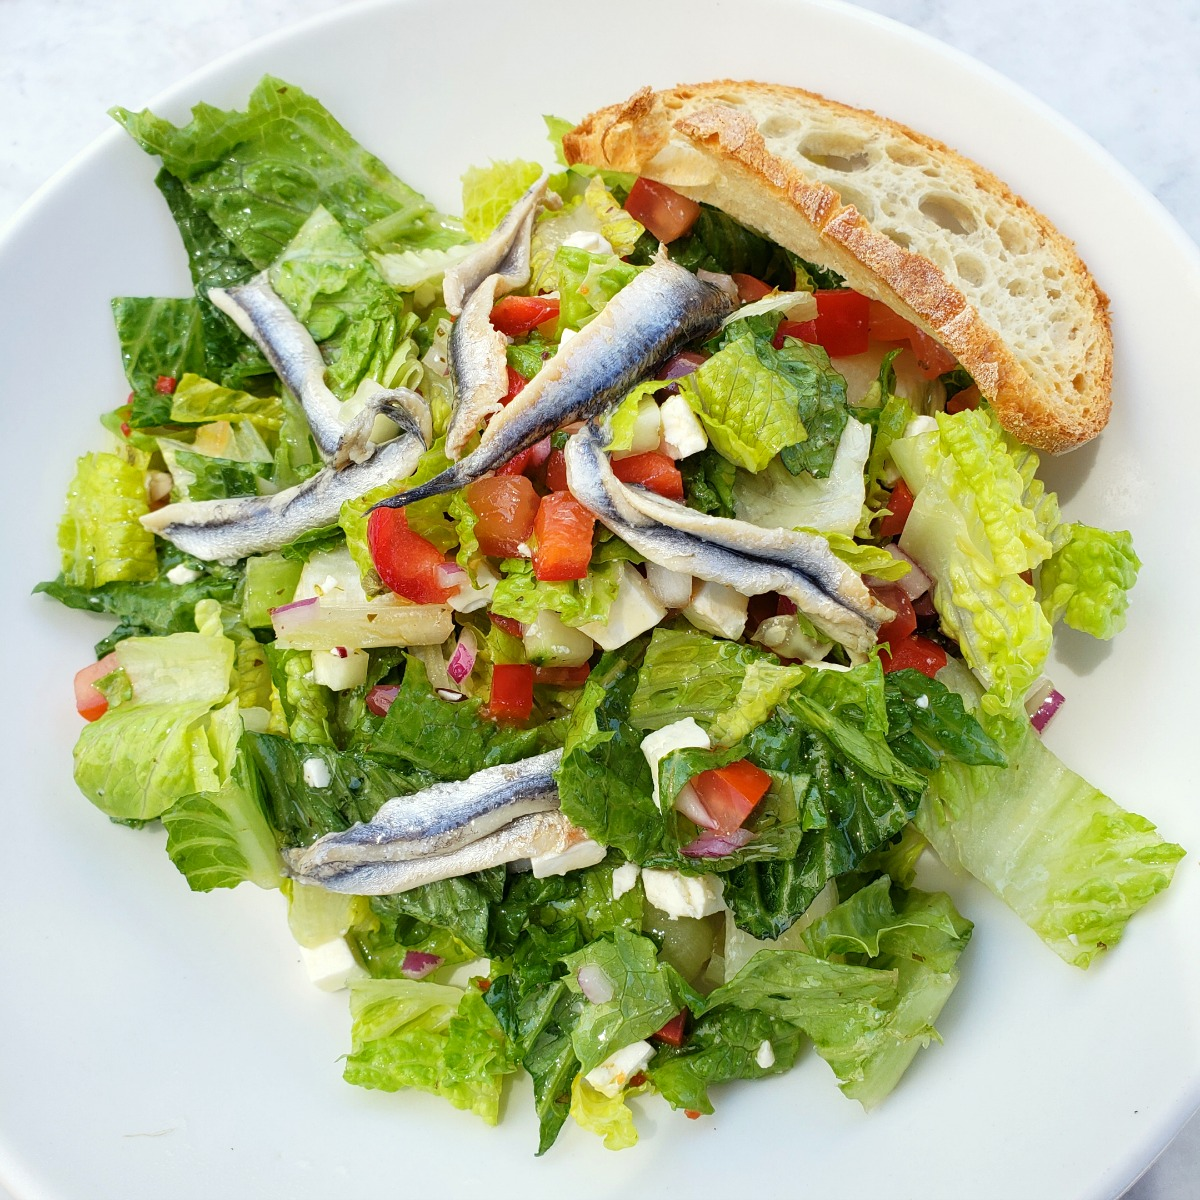 Mediterranean Salad with White Anchovies in a white bowl at The Sparrow Cafe in Malibu